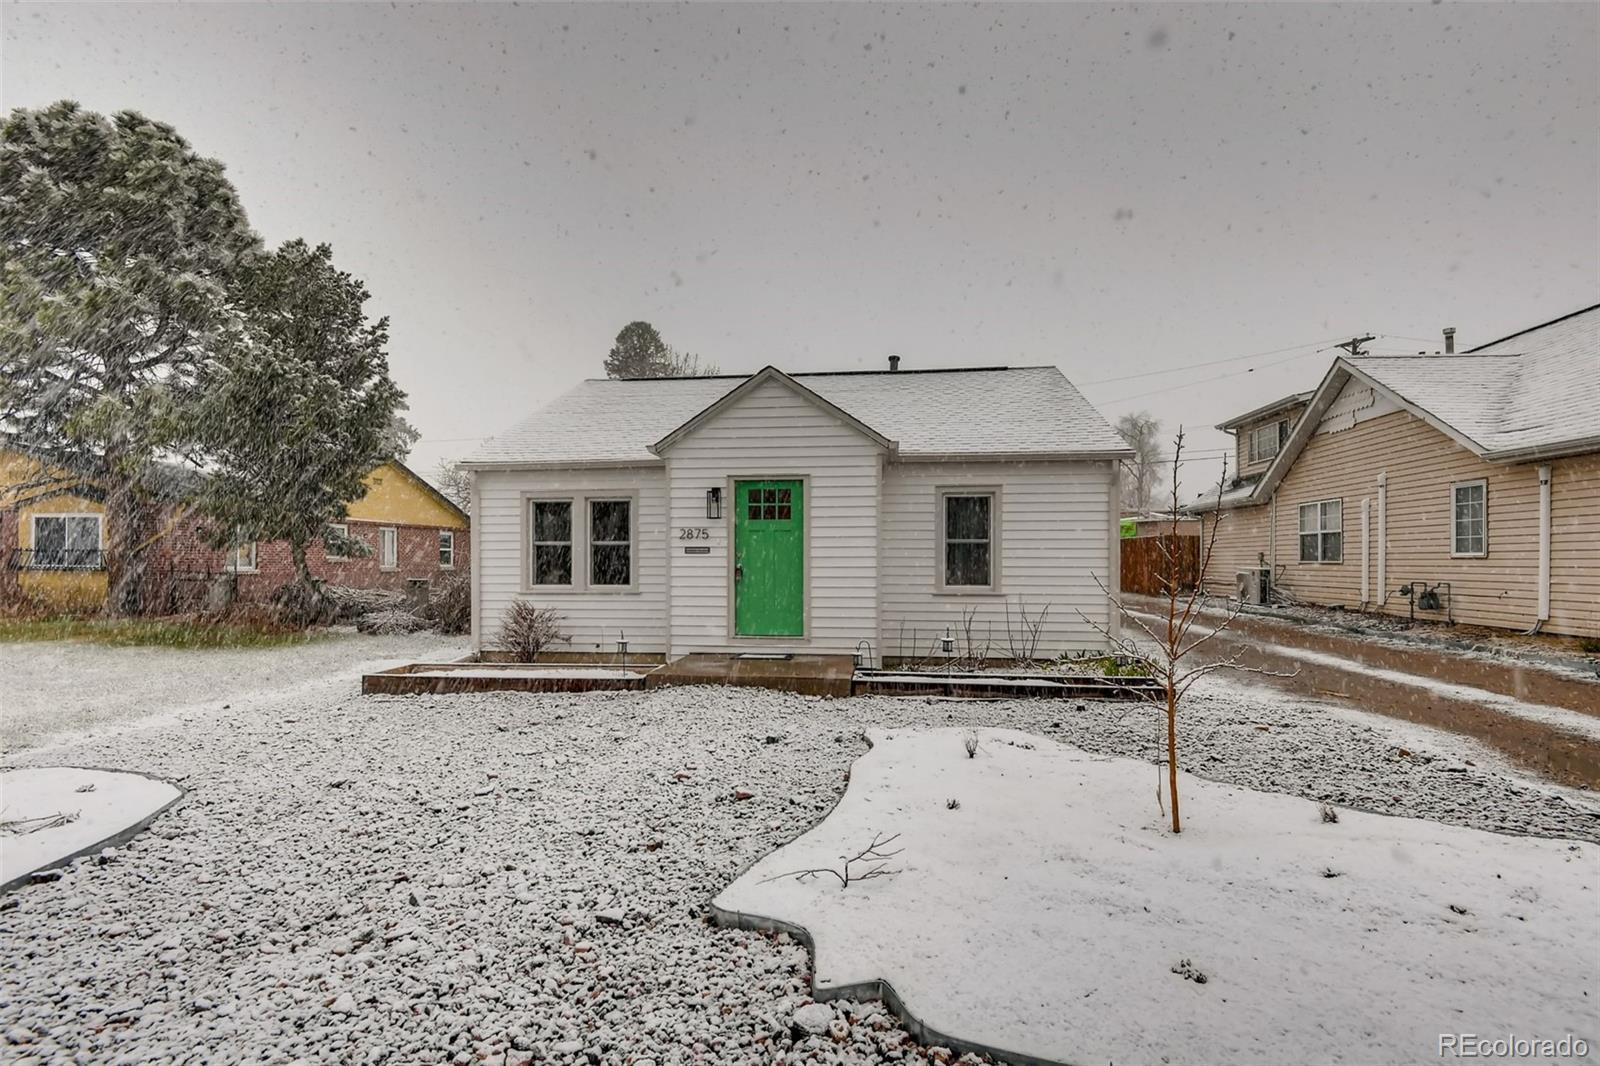 2875 Depew Street, Wheat Ridge, CO 80214 - #: 5842784